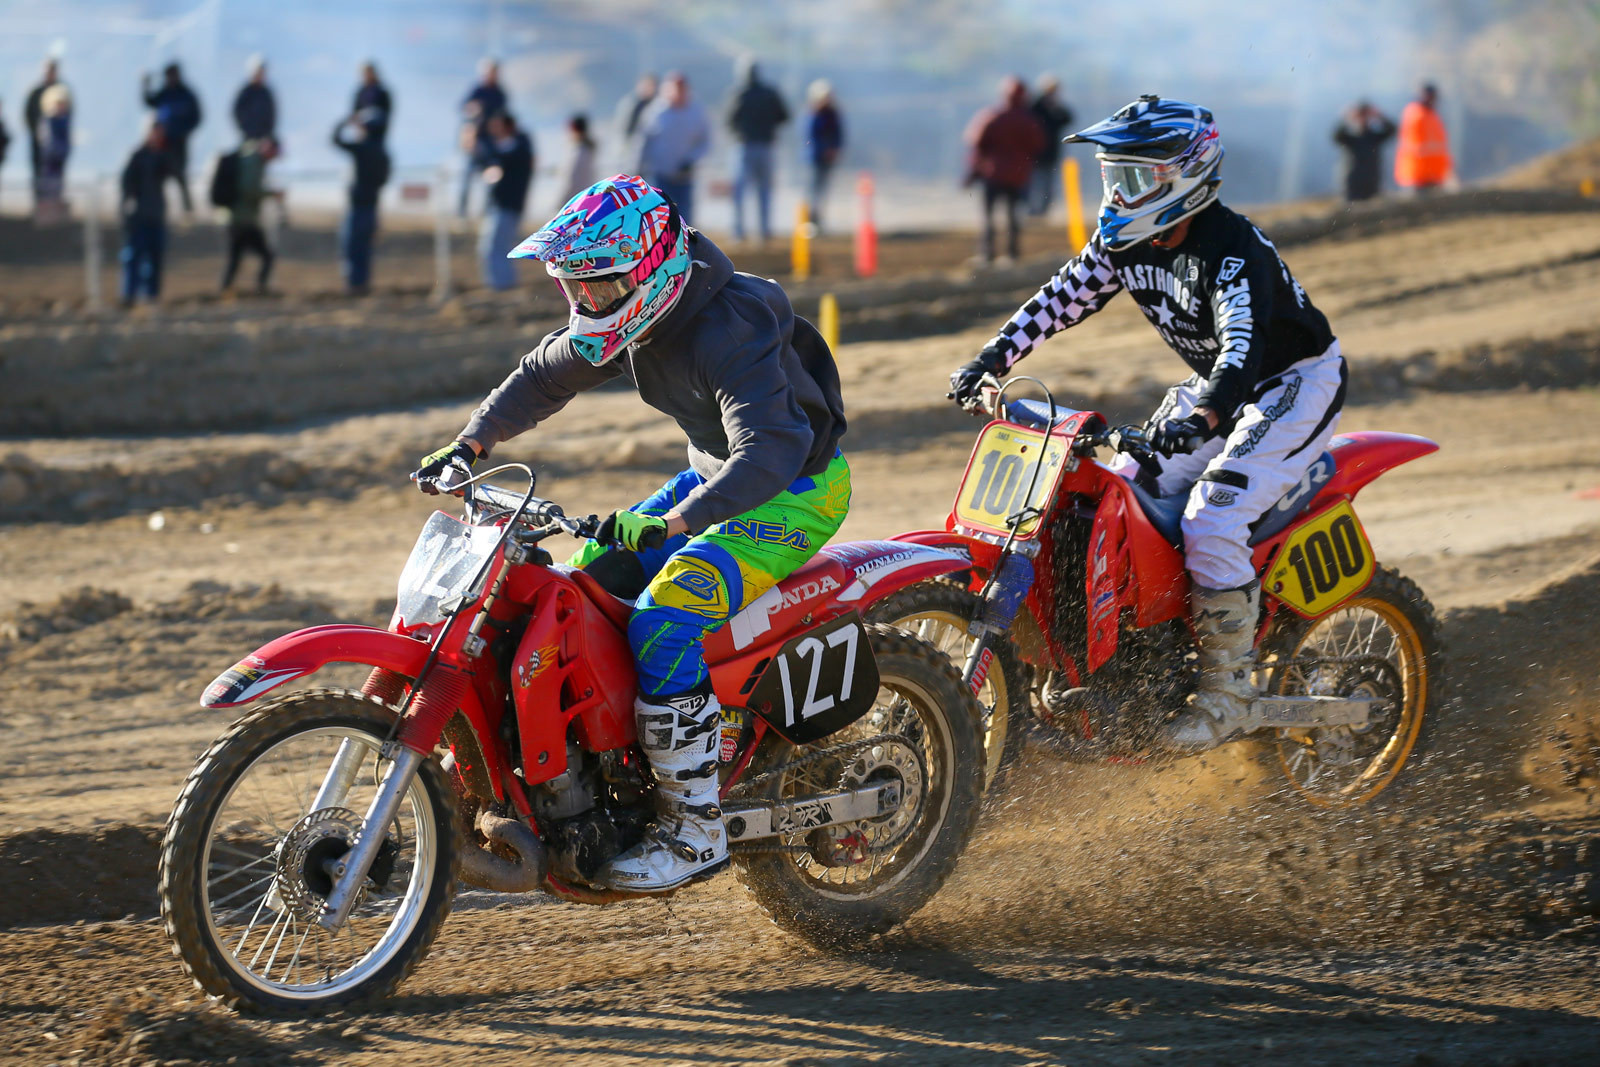 Vintage Action - Friday and Saturday at Red Bull Day In The Dirt 18 - Motocross Pictures - Vital MX